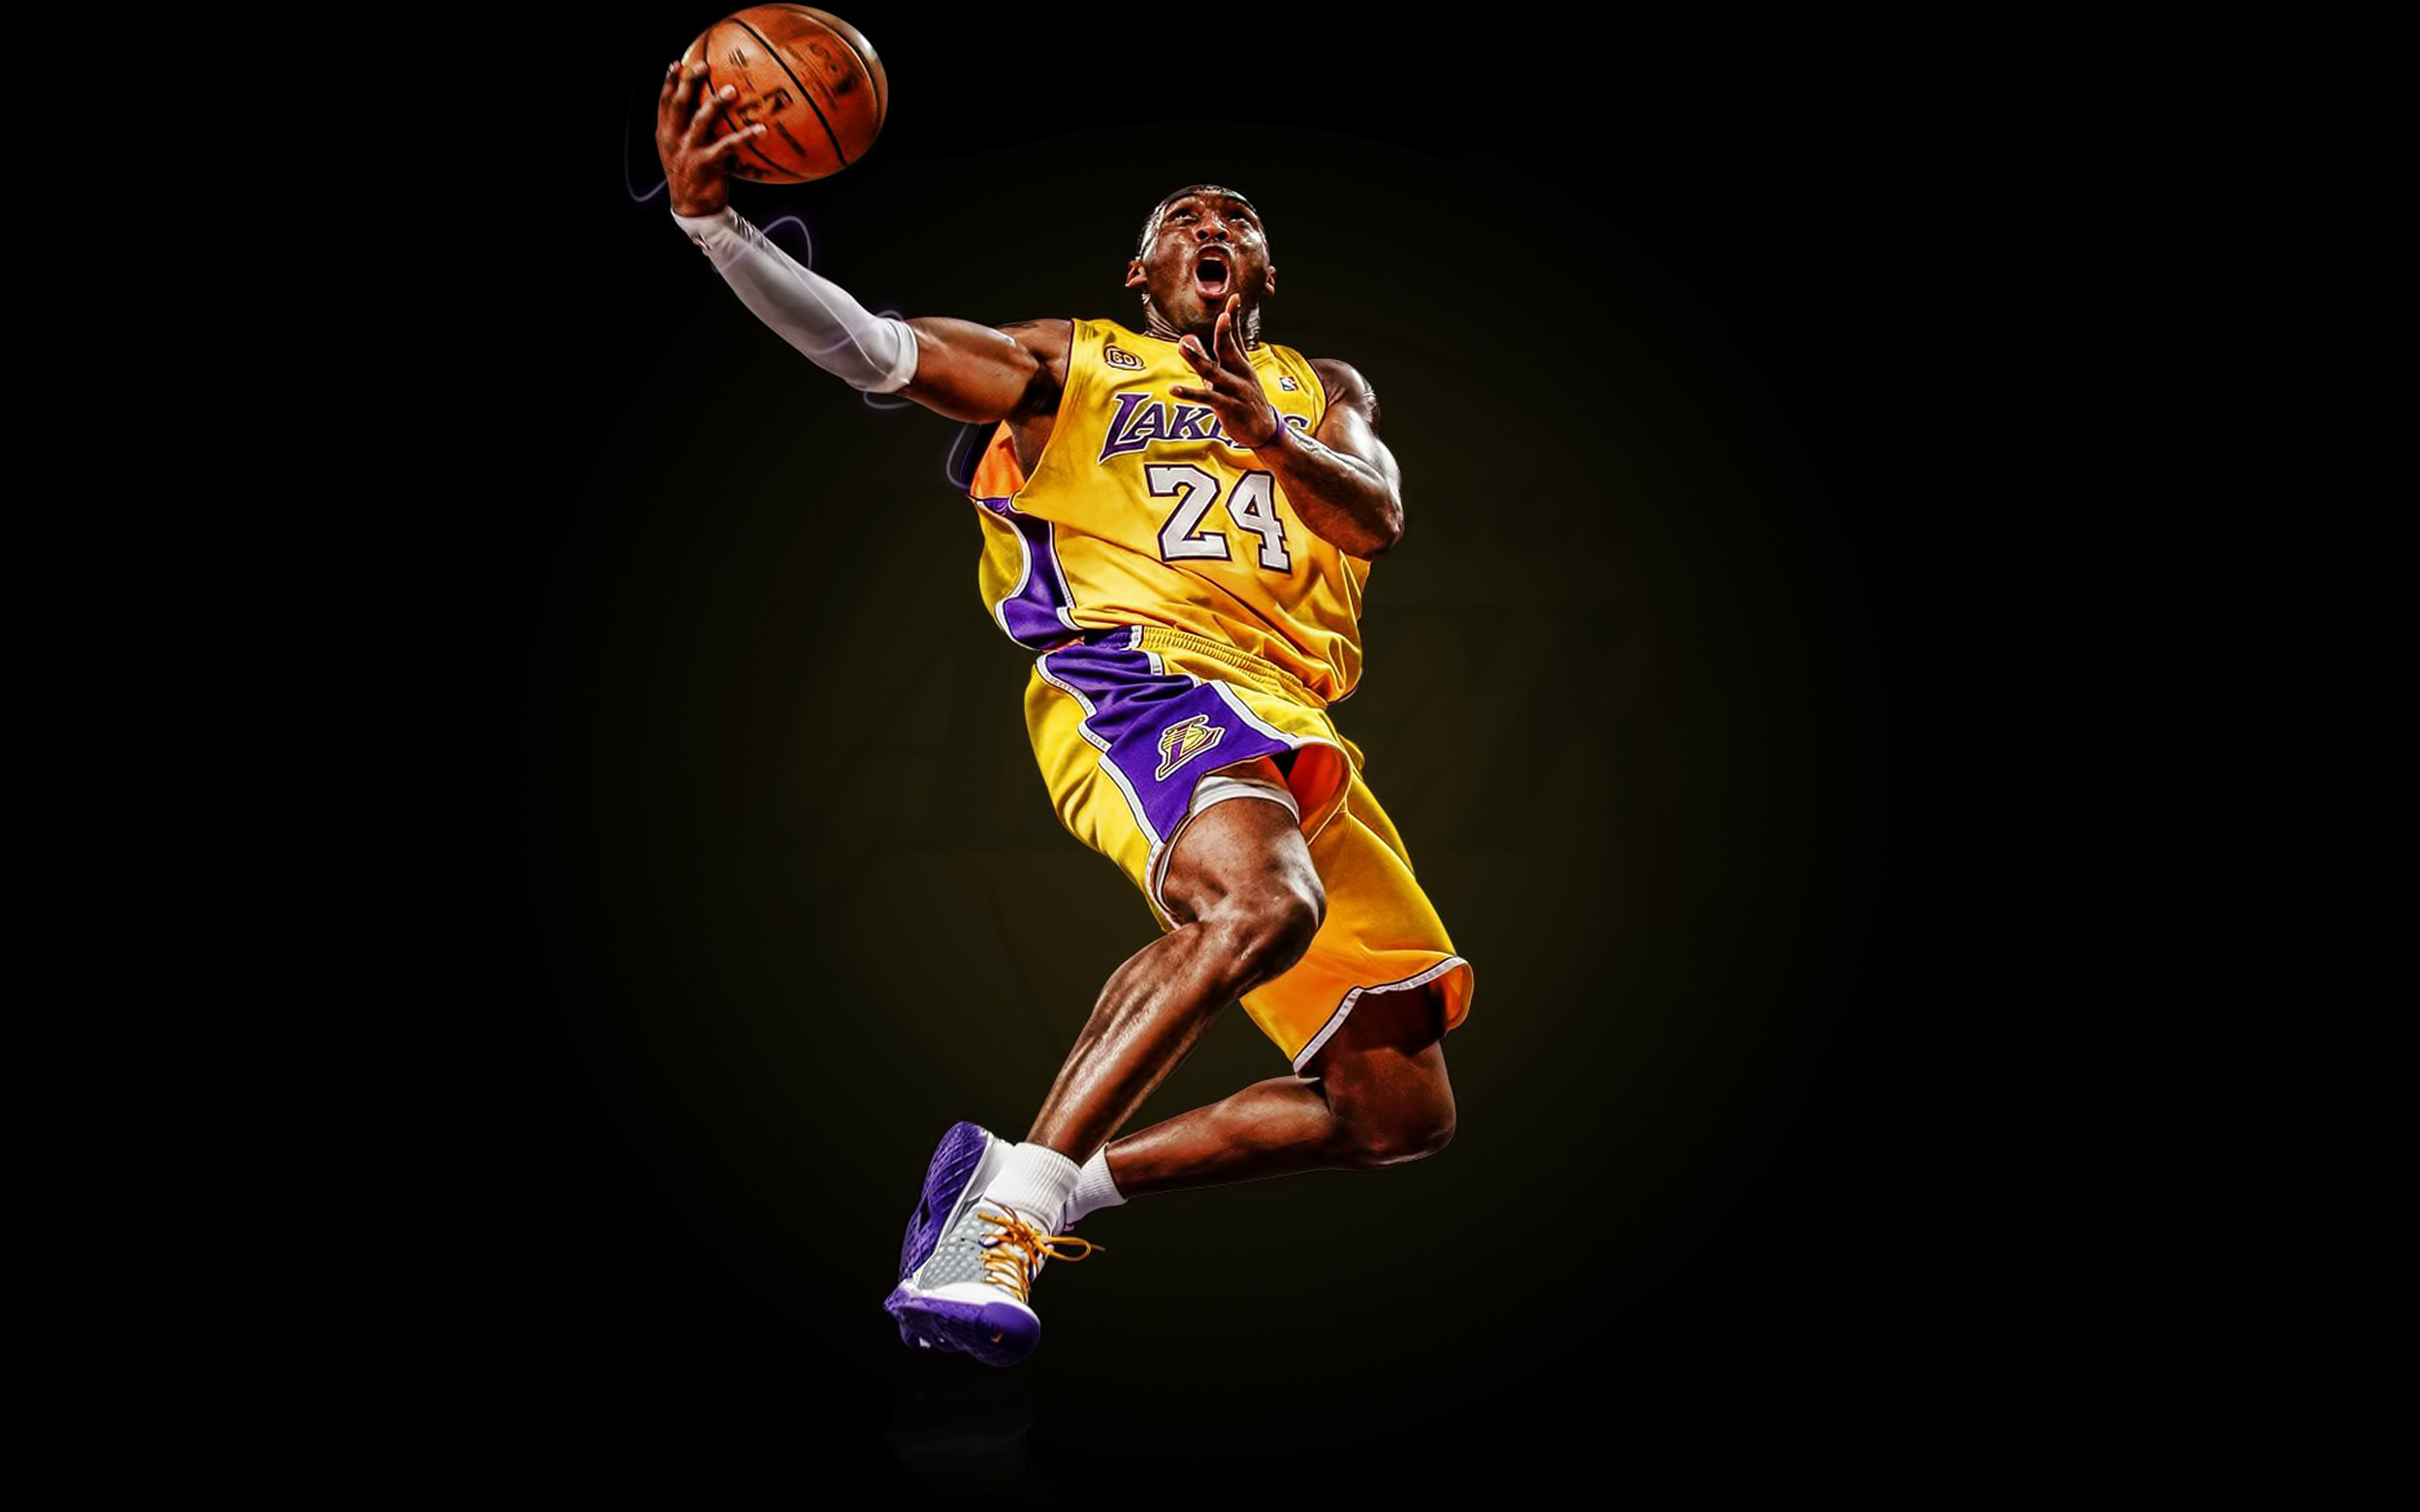 Cool Basketball Player Wallpapers: Kobe Bryant Wallpapers HD Collection